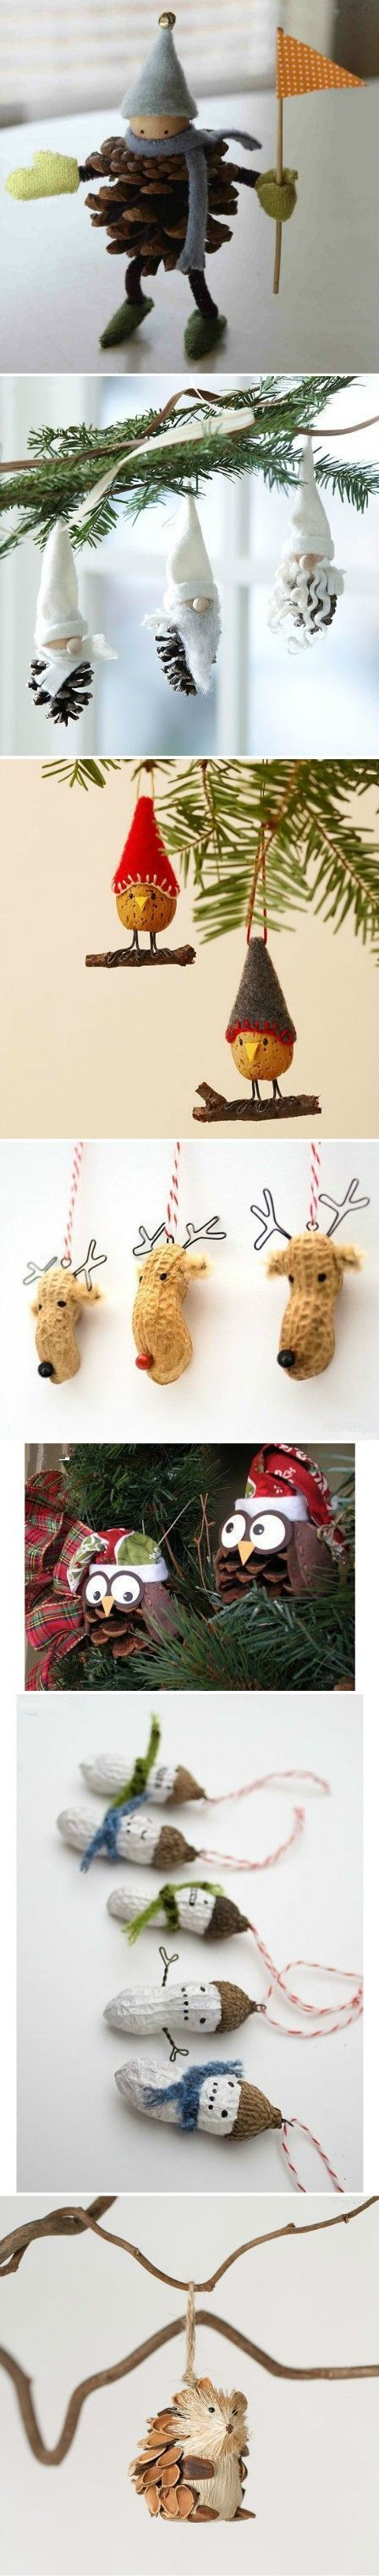 peanut ornament